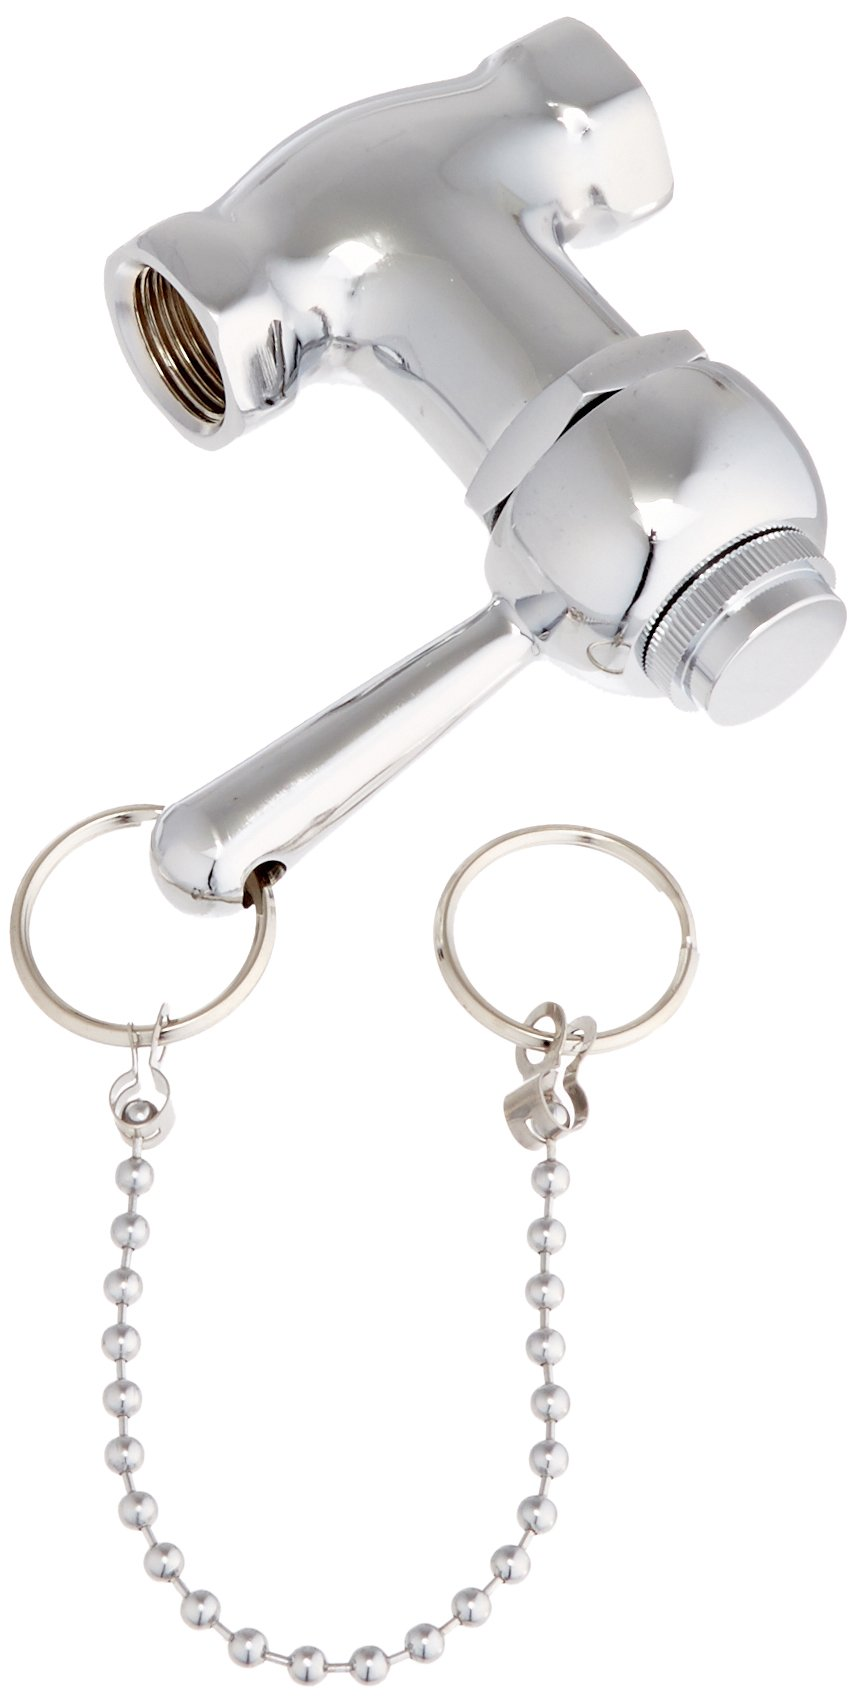 EZ FLO 10789 Self Closing Pull Chain Shower Valve